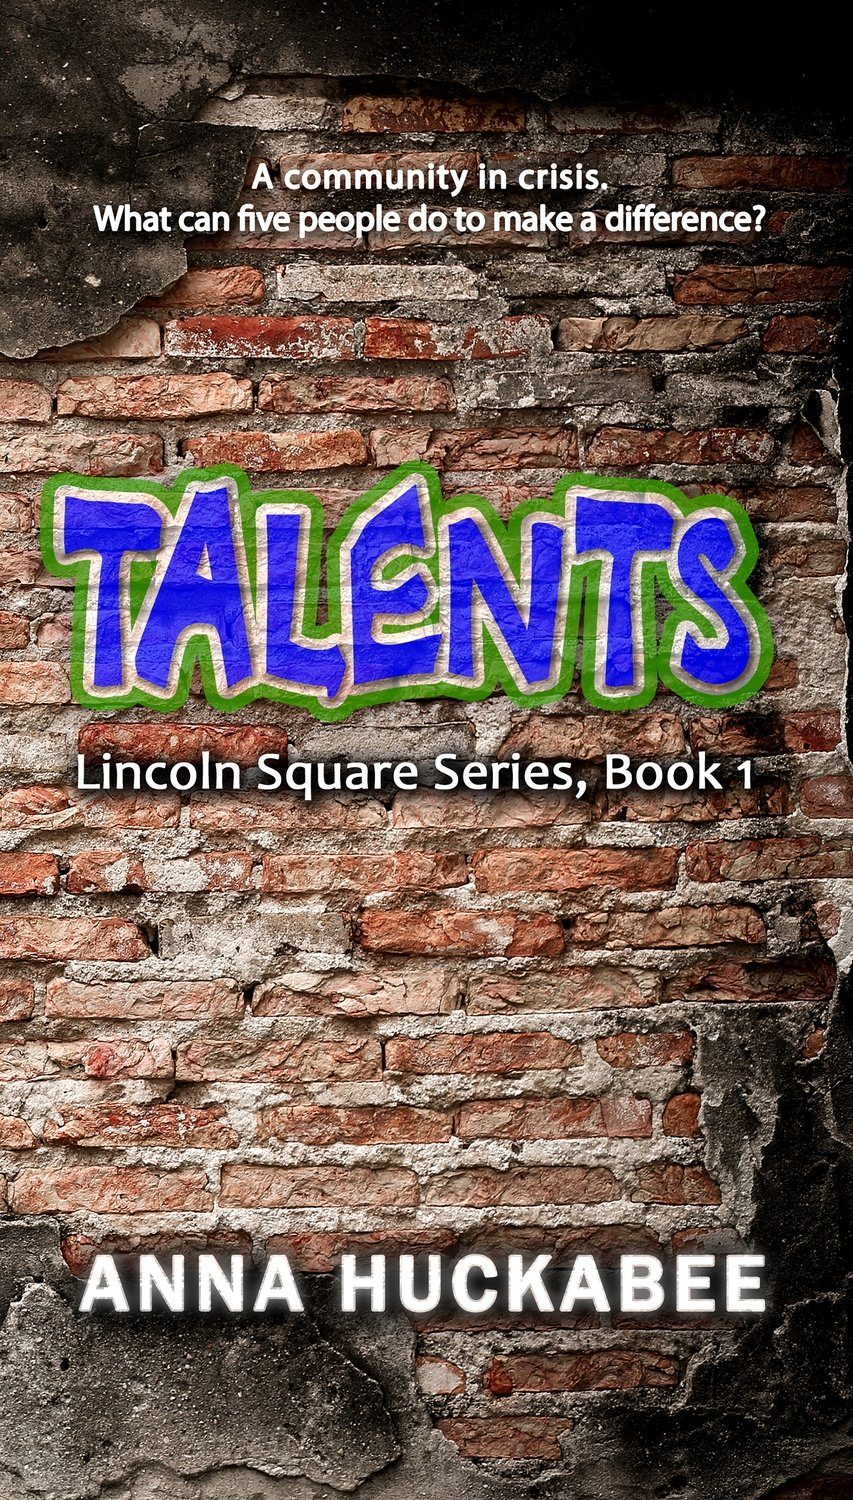 Talents (Lincoln Square Series, Book 1)